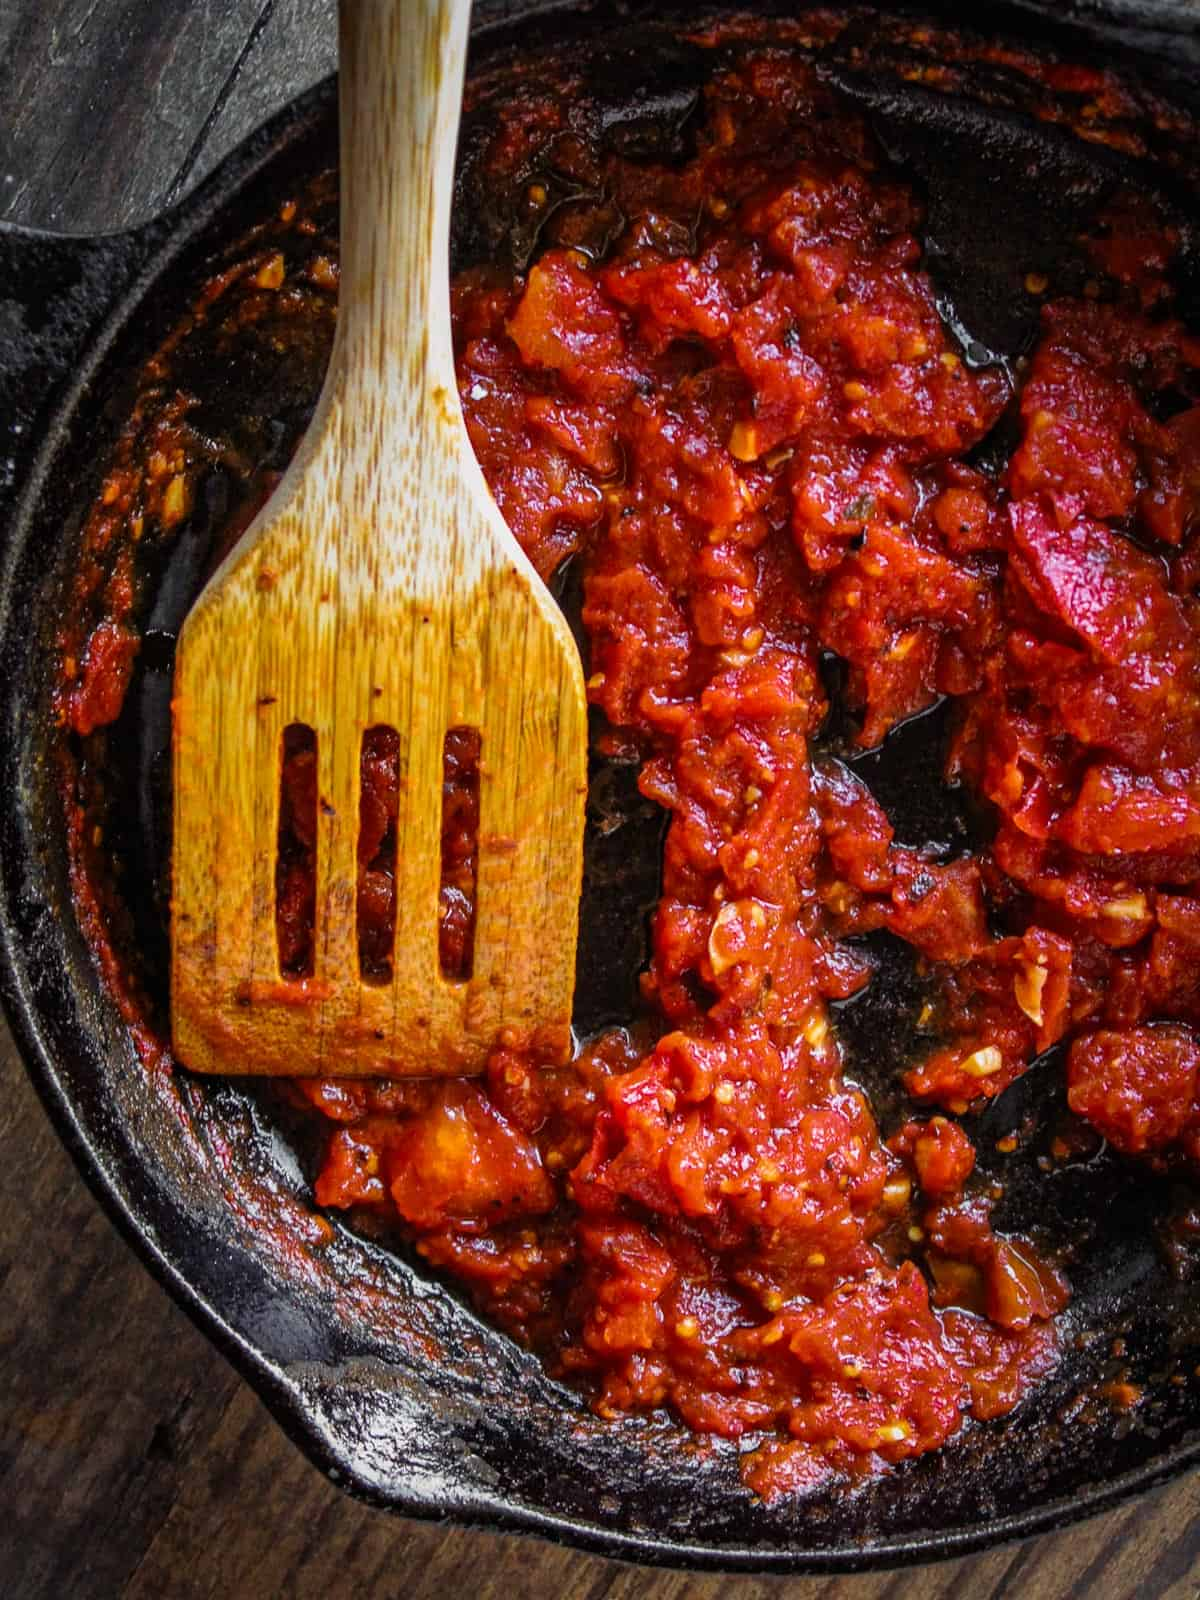 arrabiata dip in a cast iron skillet with a wooden spatula